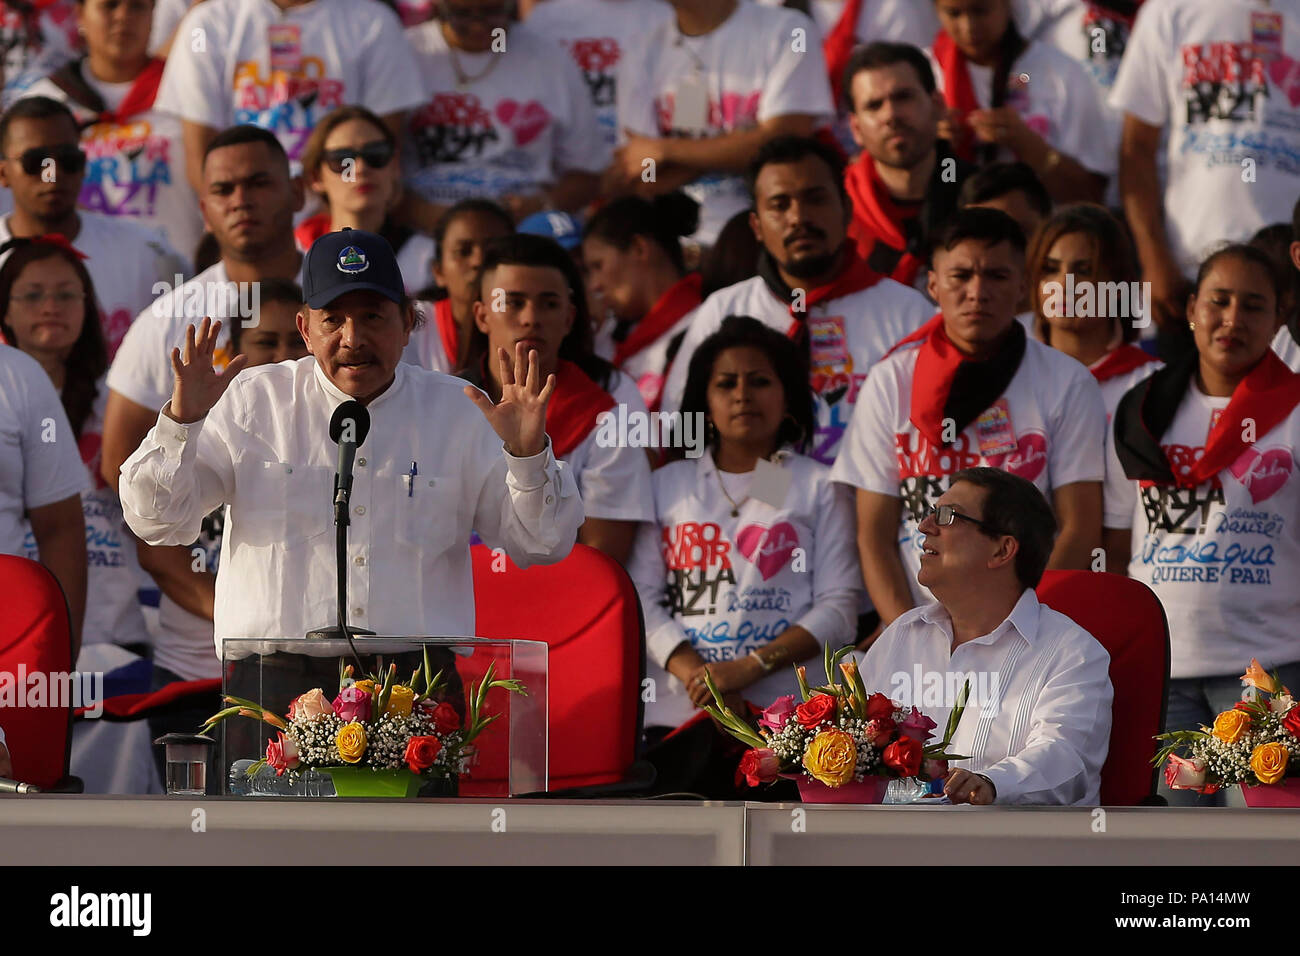 Managua, Nicaragua. 19th July, 2018. Nicaragua's President Daniel Ortega (c) speaks during an event with thousand of sandinistas at the Plaza de la Fe, in Managua, Nicaragua, on 19 July 2018. Ortega called the bishops of the Nicaraguan Bishops' Conference 'coup leaders' and said they were accomplices of internal and external forces to try to overthrow him. Credit: EFE News Agency/Alamy Live News - Stock Image